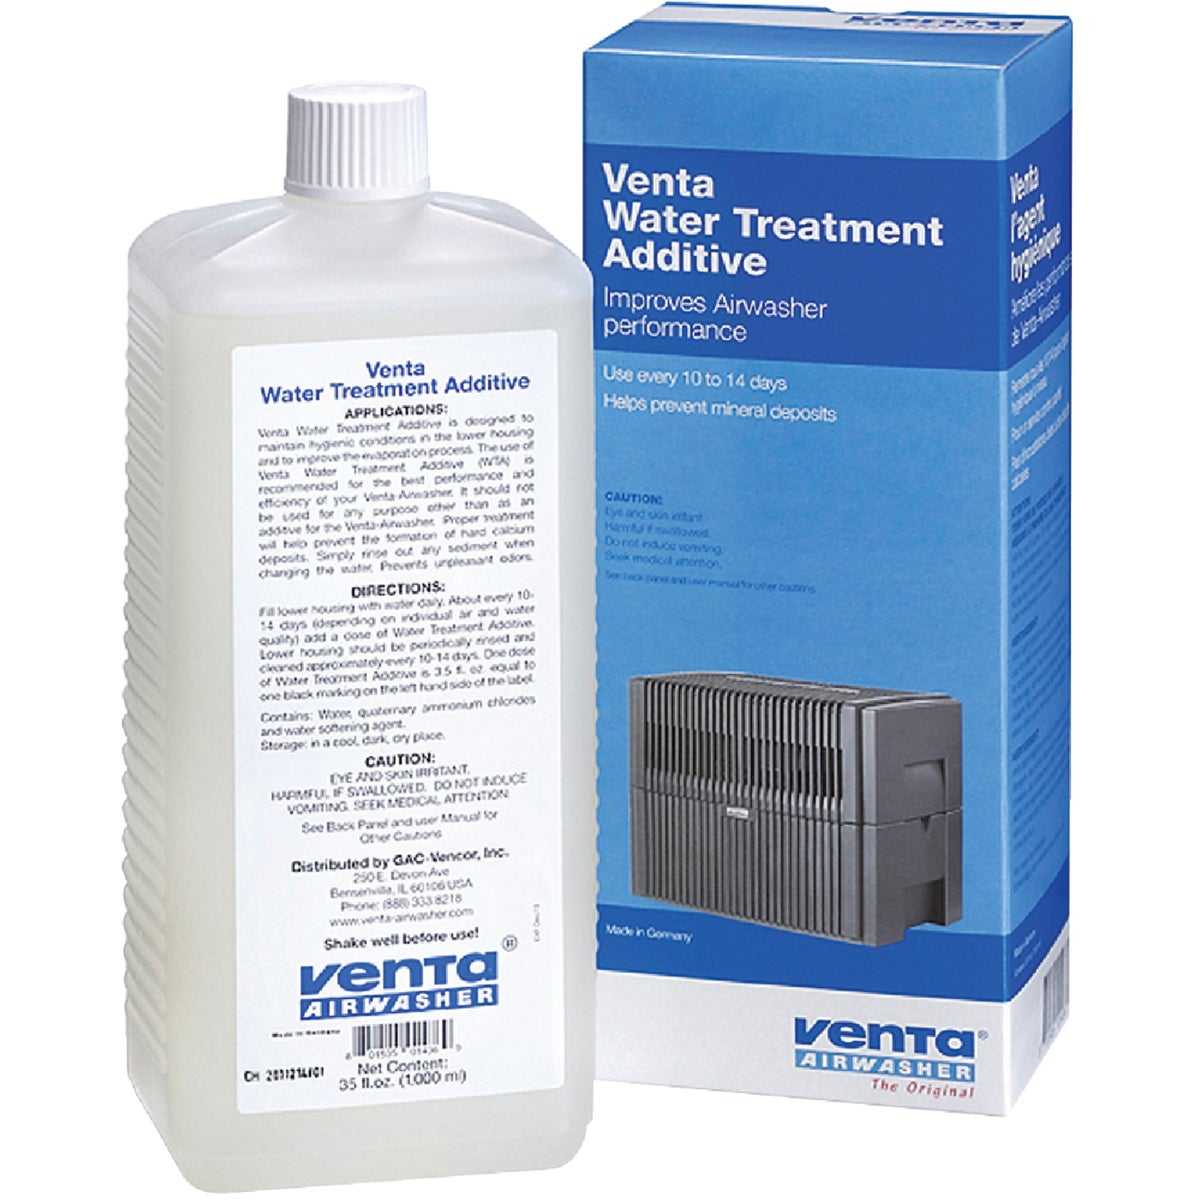 WATER TREATMENT ADDITIVE